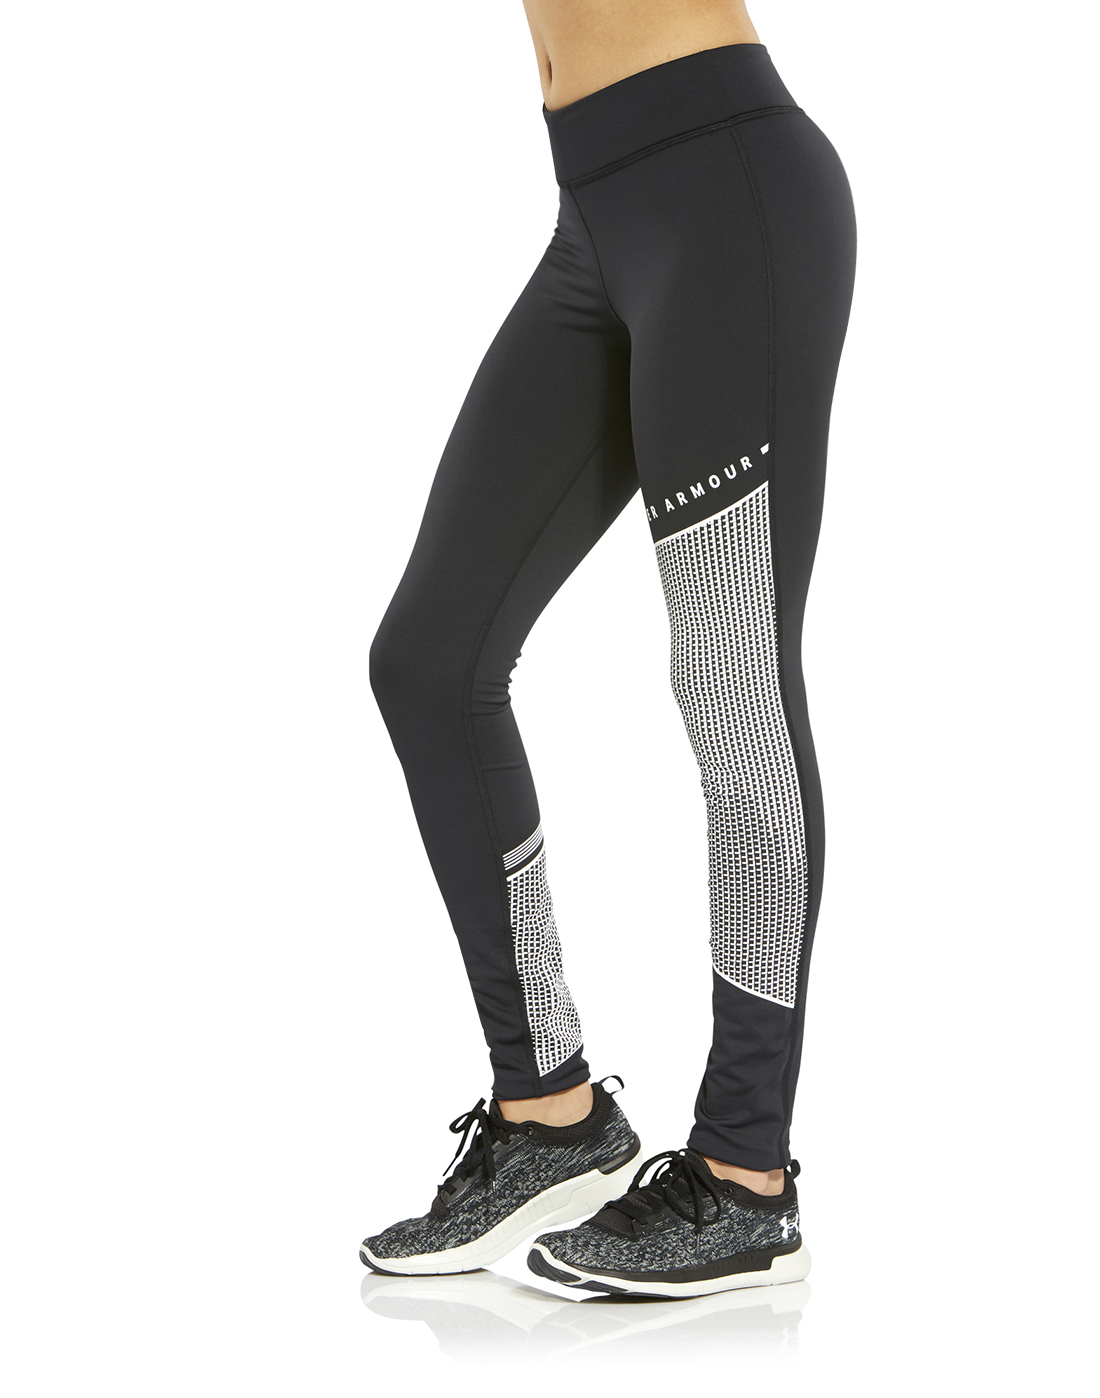 2702e0dd1 ... Day Delivery. Under Armour. Womens Coldgear Graphic Tight. Womens  Coldgear Graphic Tight ...